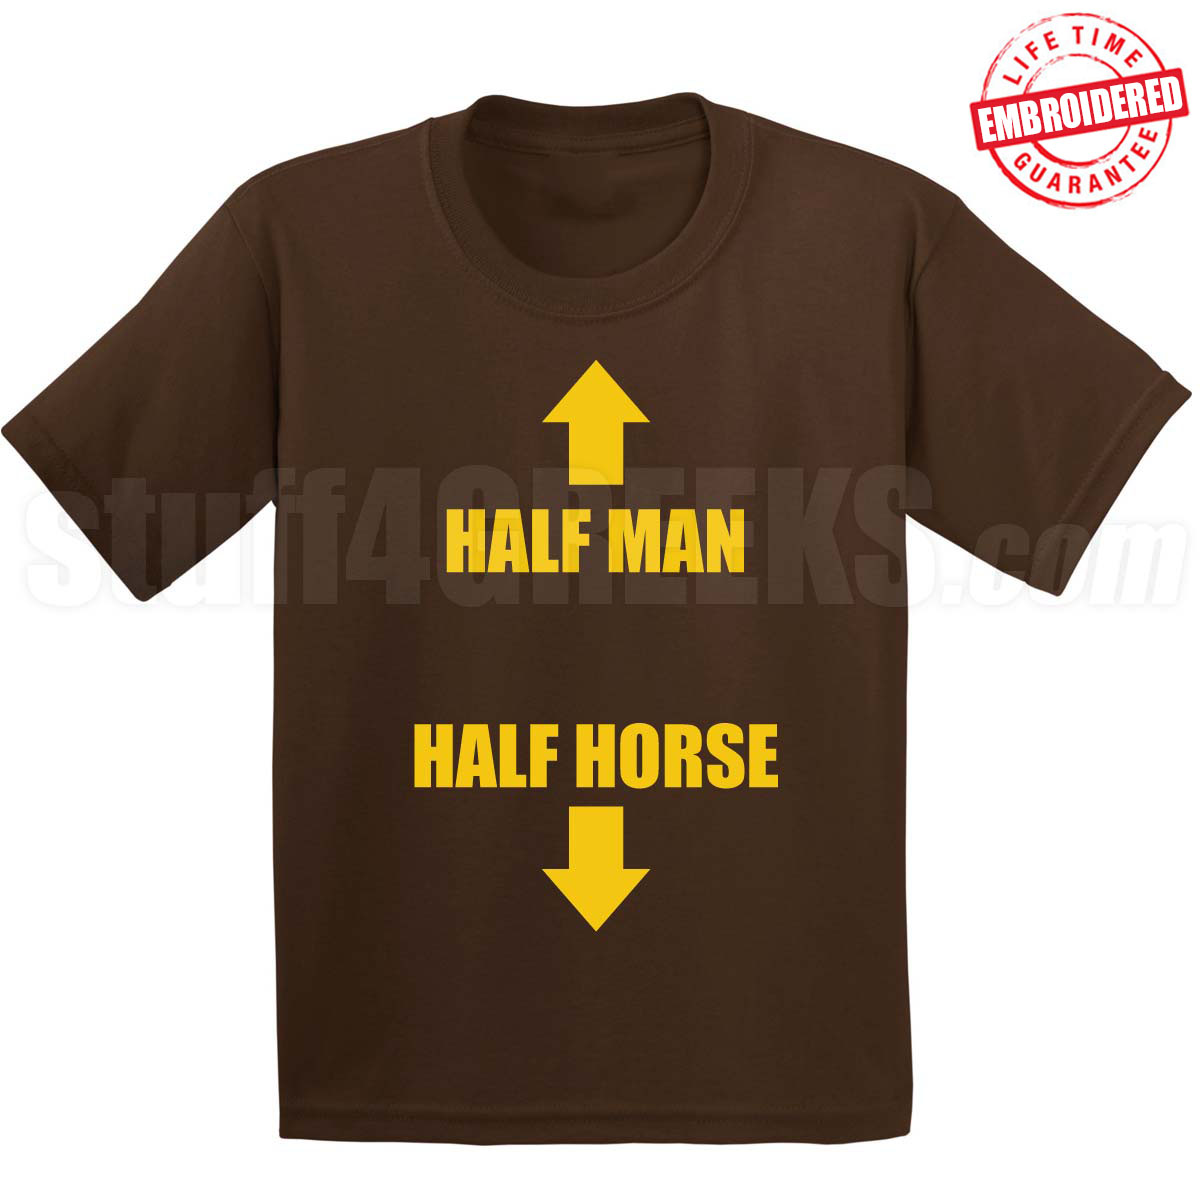 Half Man Half Horse T Shirt Brown Embroidered With Lifetime Guarantee